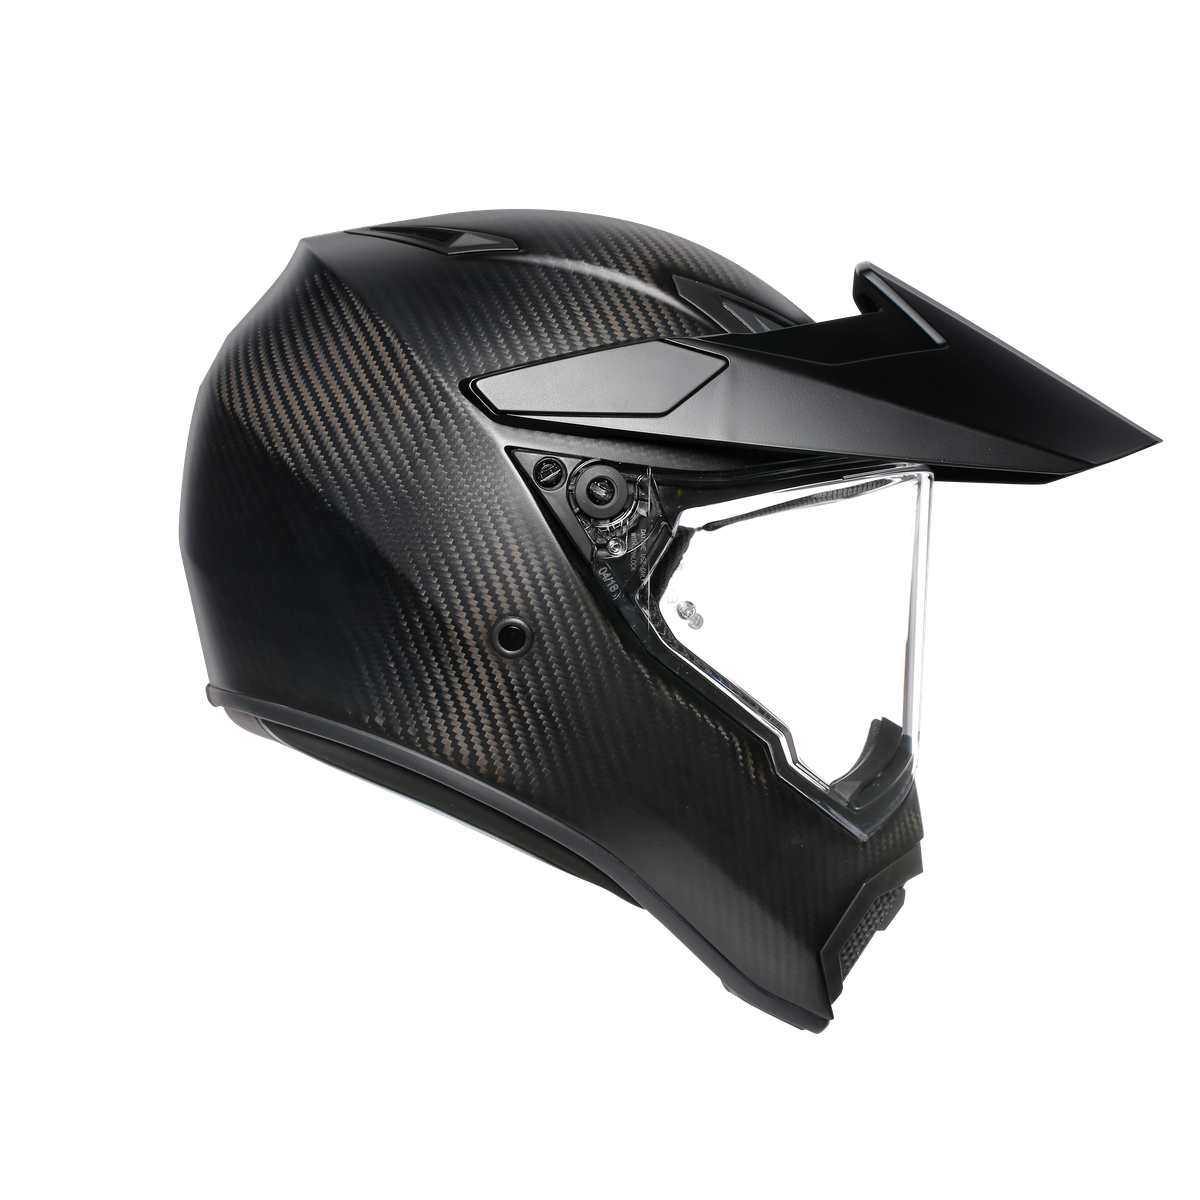 Agv Ax9 Matt Carbon Agv Motorcycle Helmets Free Uk Delivery